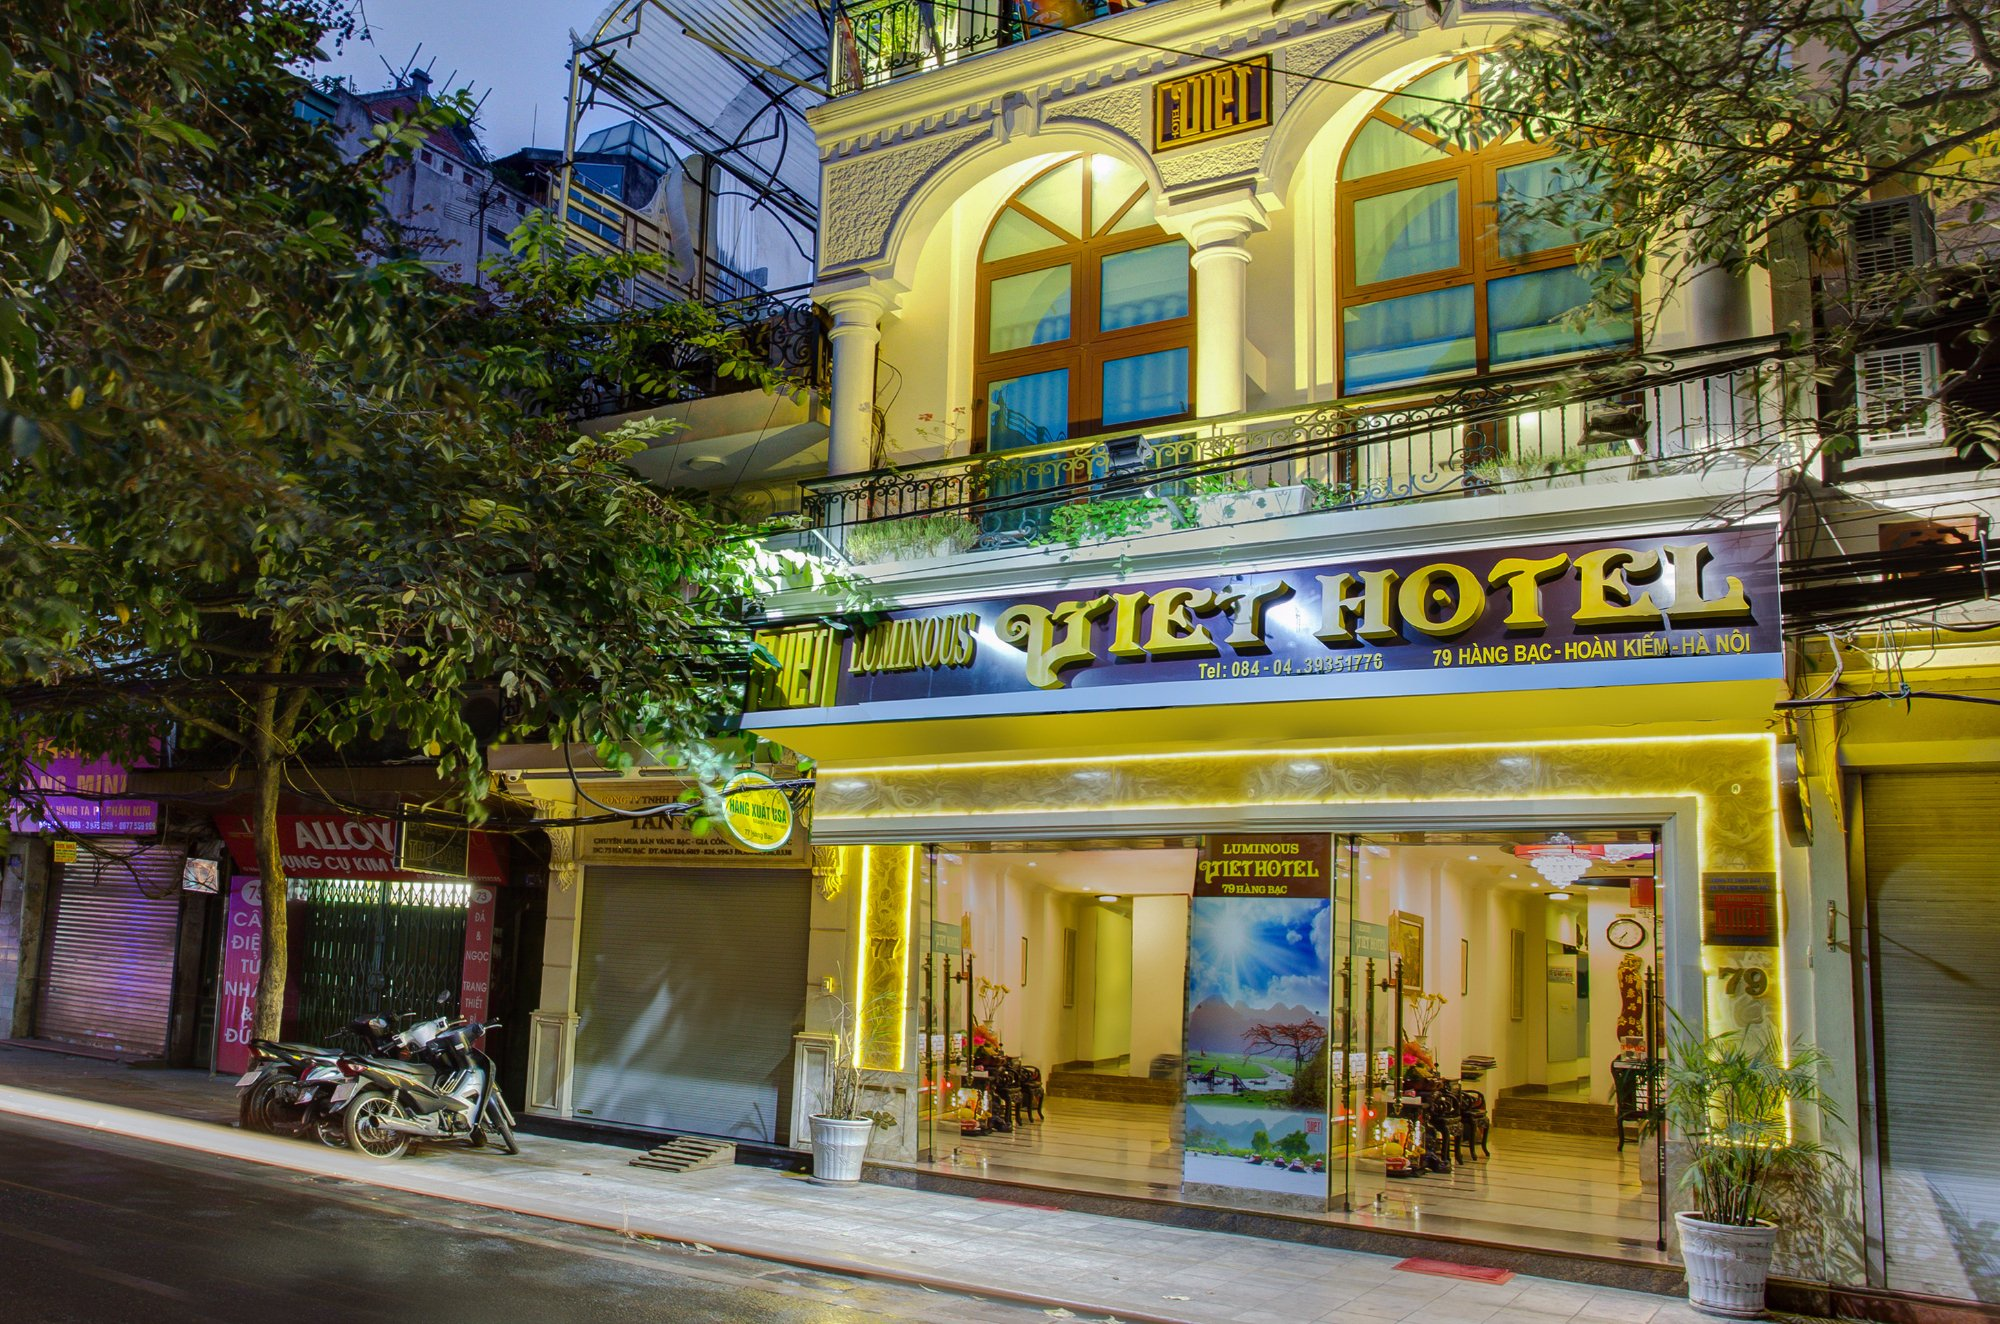 Luminous Viet Hotel